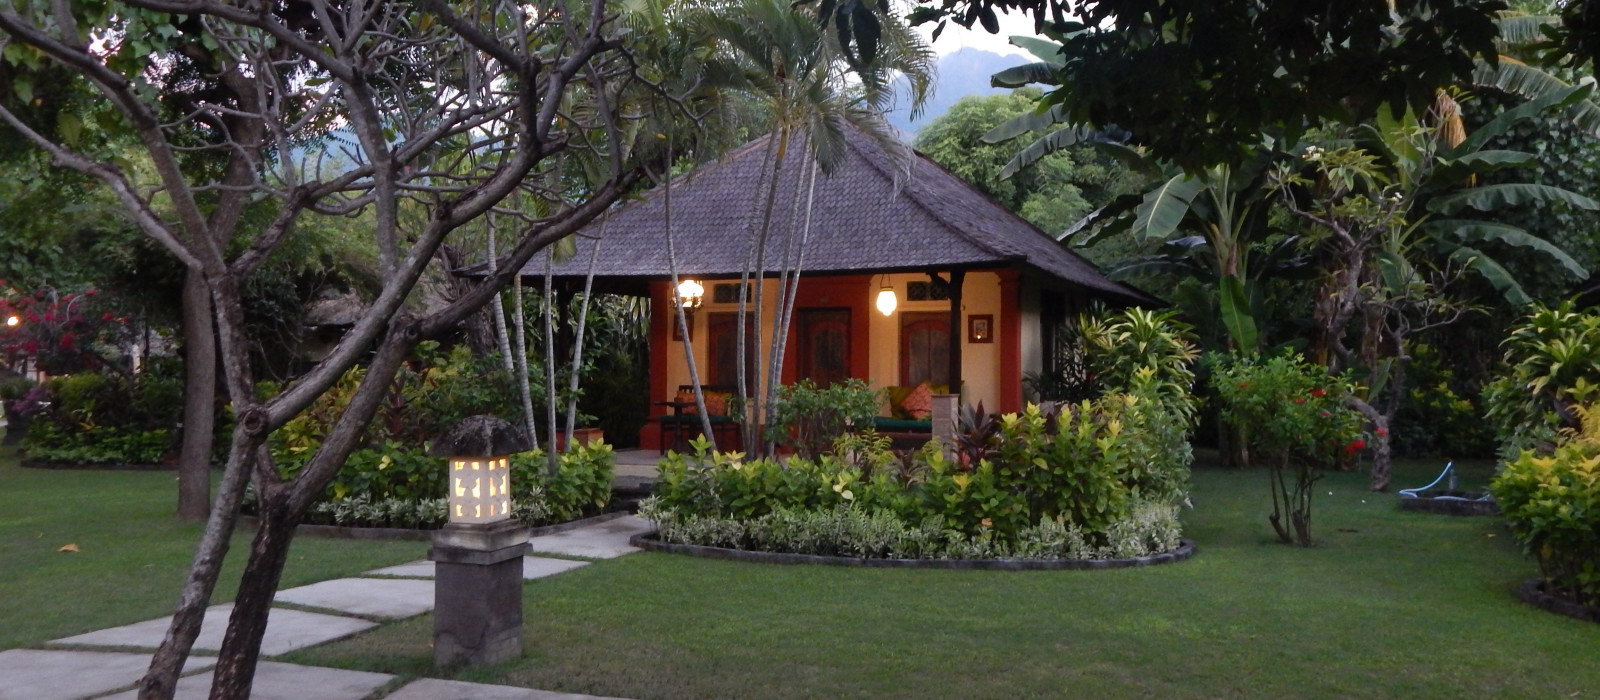 Hotel Taman Sari Beach Resort Indonesien